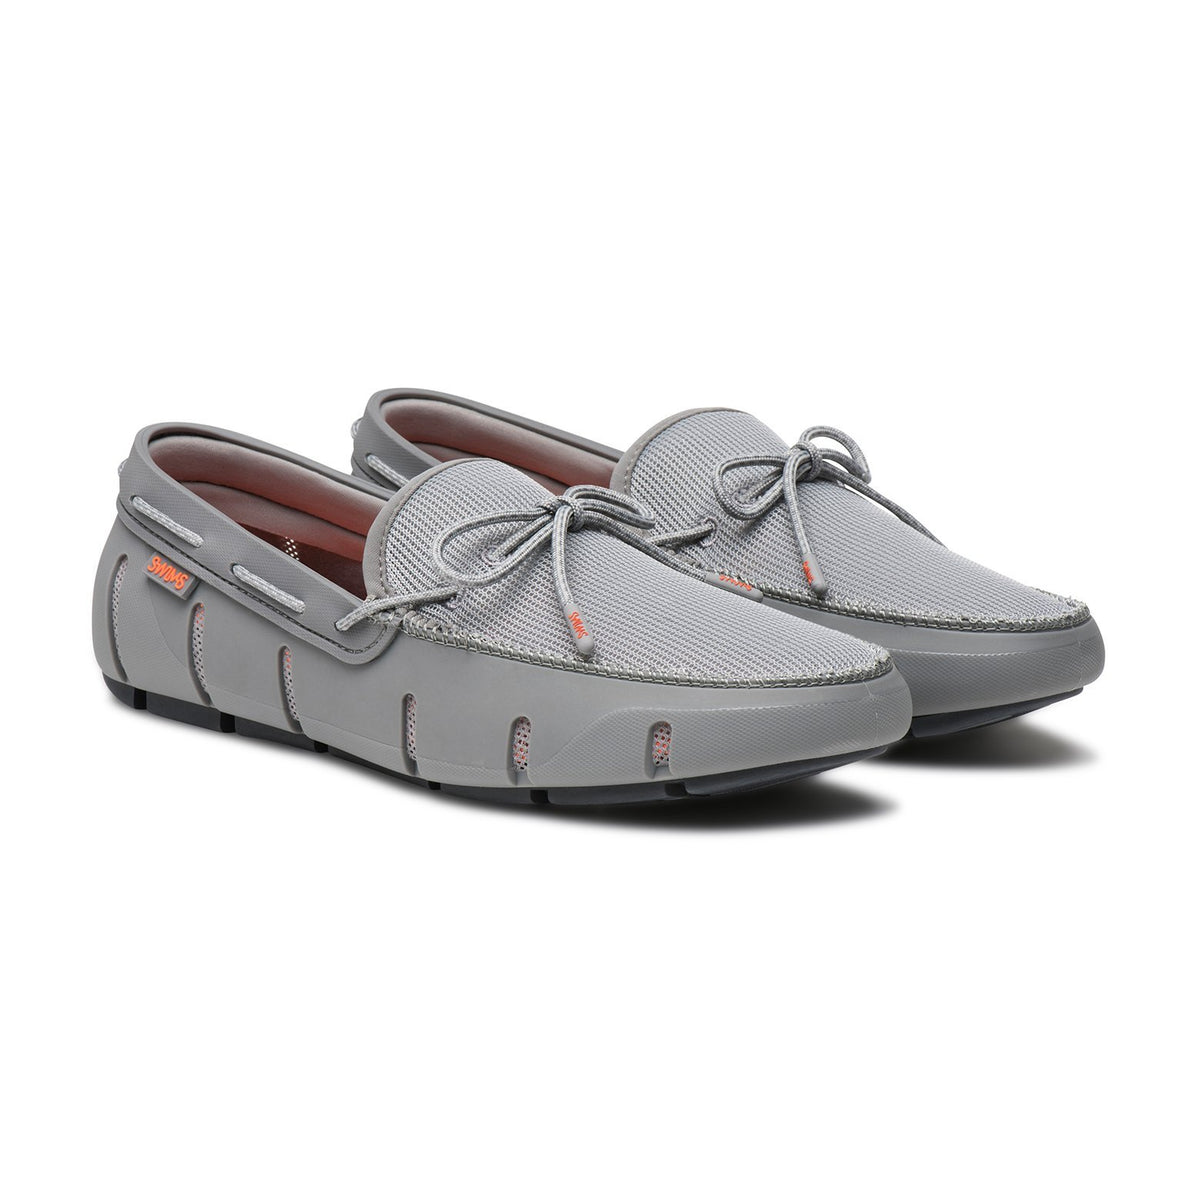 Stride Lace Loafer - background::white,variant::Gray/Gray Fleck